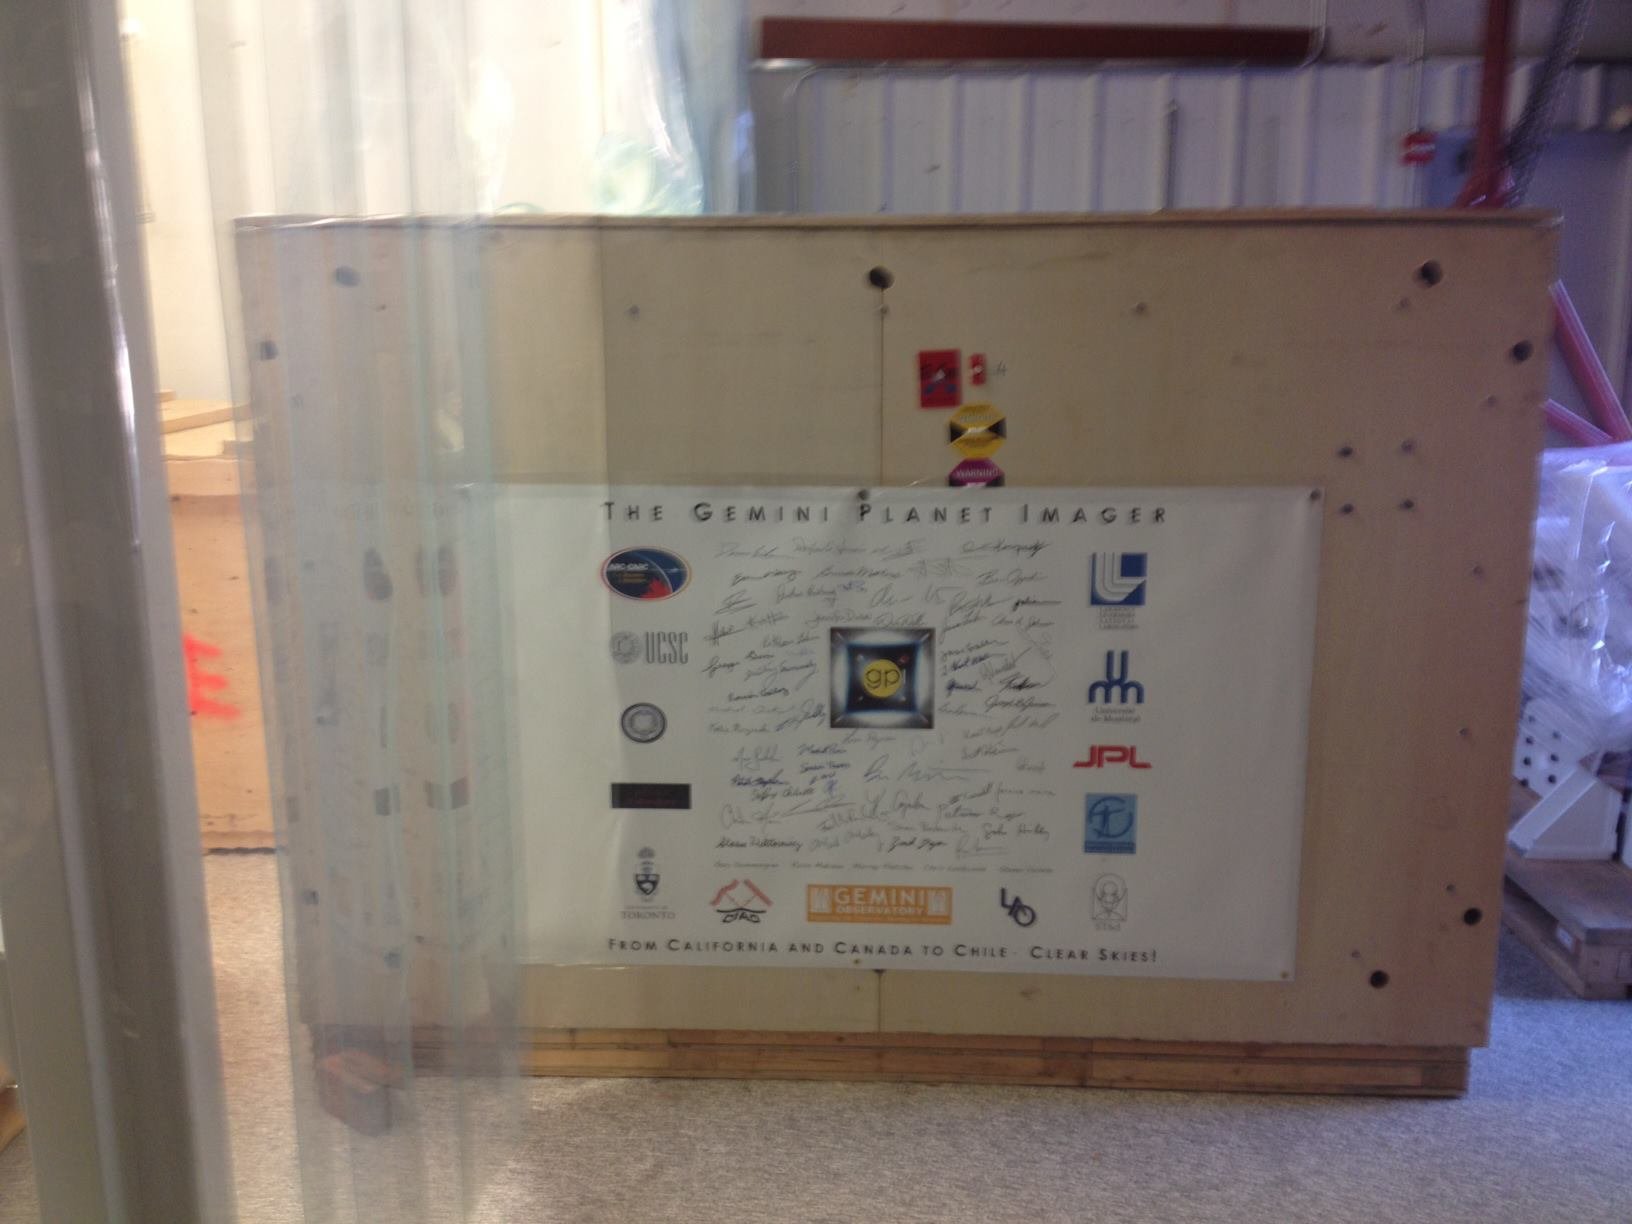 Signed crate with ~100 signatures from the entire GPI team.